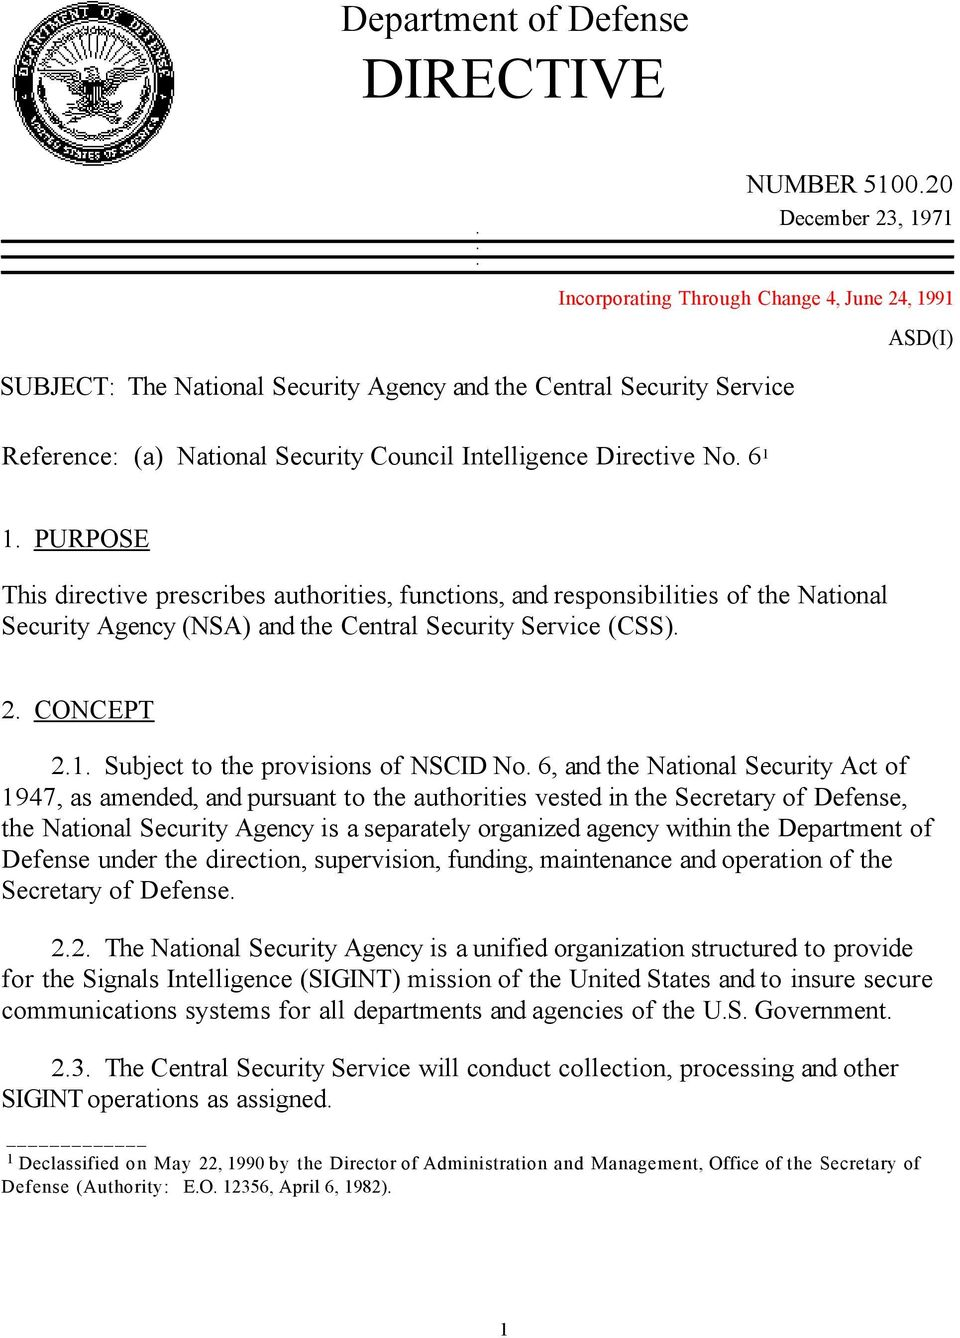 Directive No. 6 1 1. PURPOSE This directive prescribes authorities, functions, and responsibilities of the National Security Agency (NSA) and the Central Security Service (CSS). 2. CONCEPT 2.1. Subject to the provisions of NSCID No.